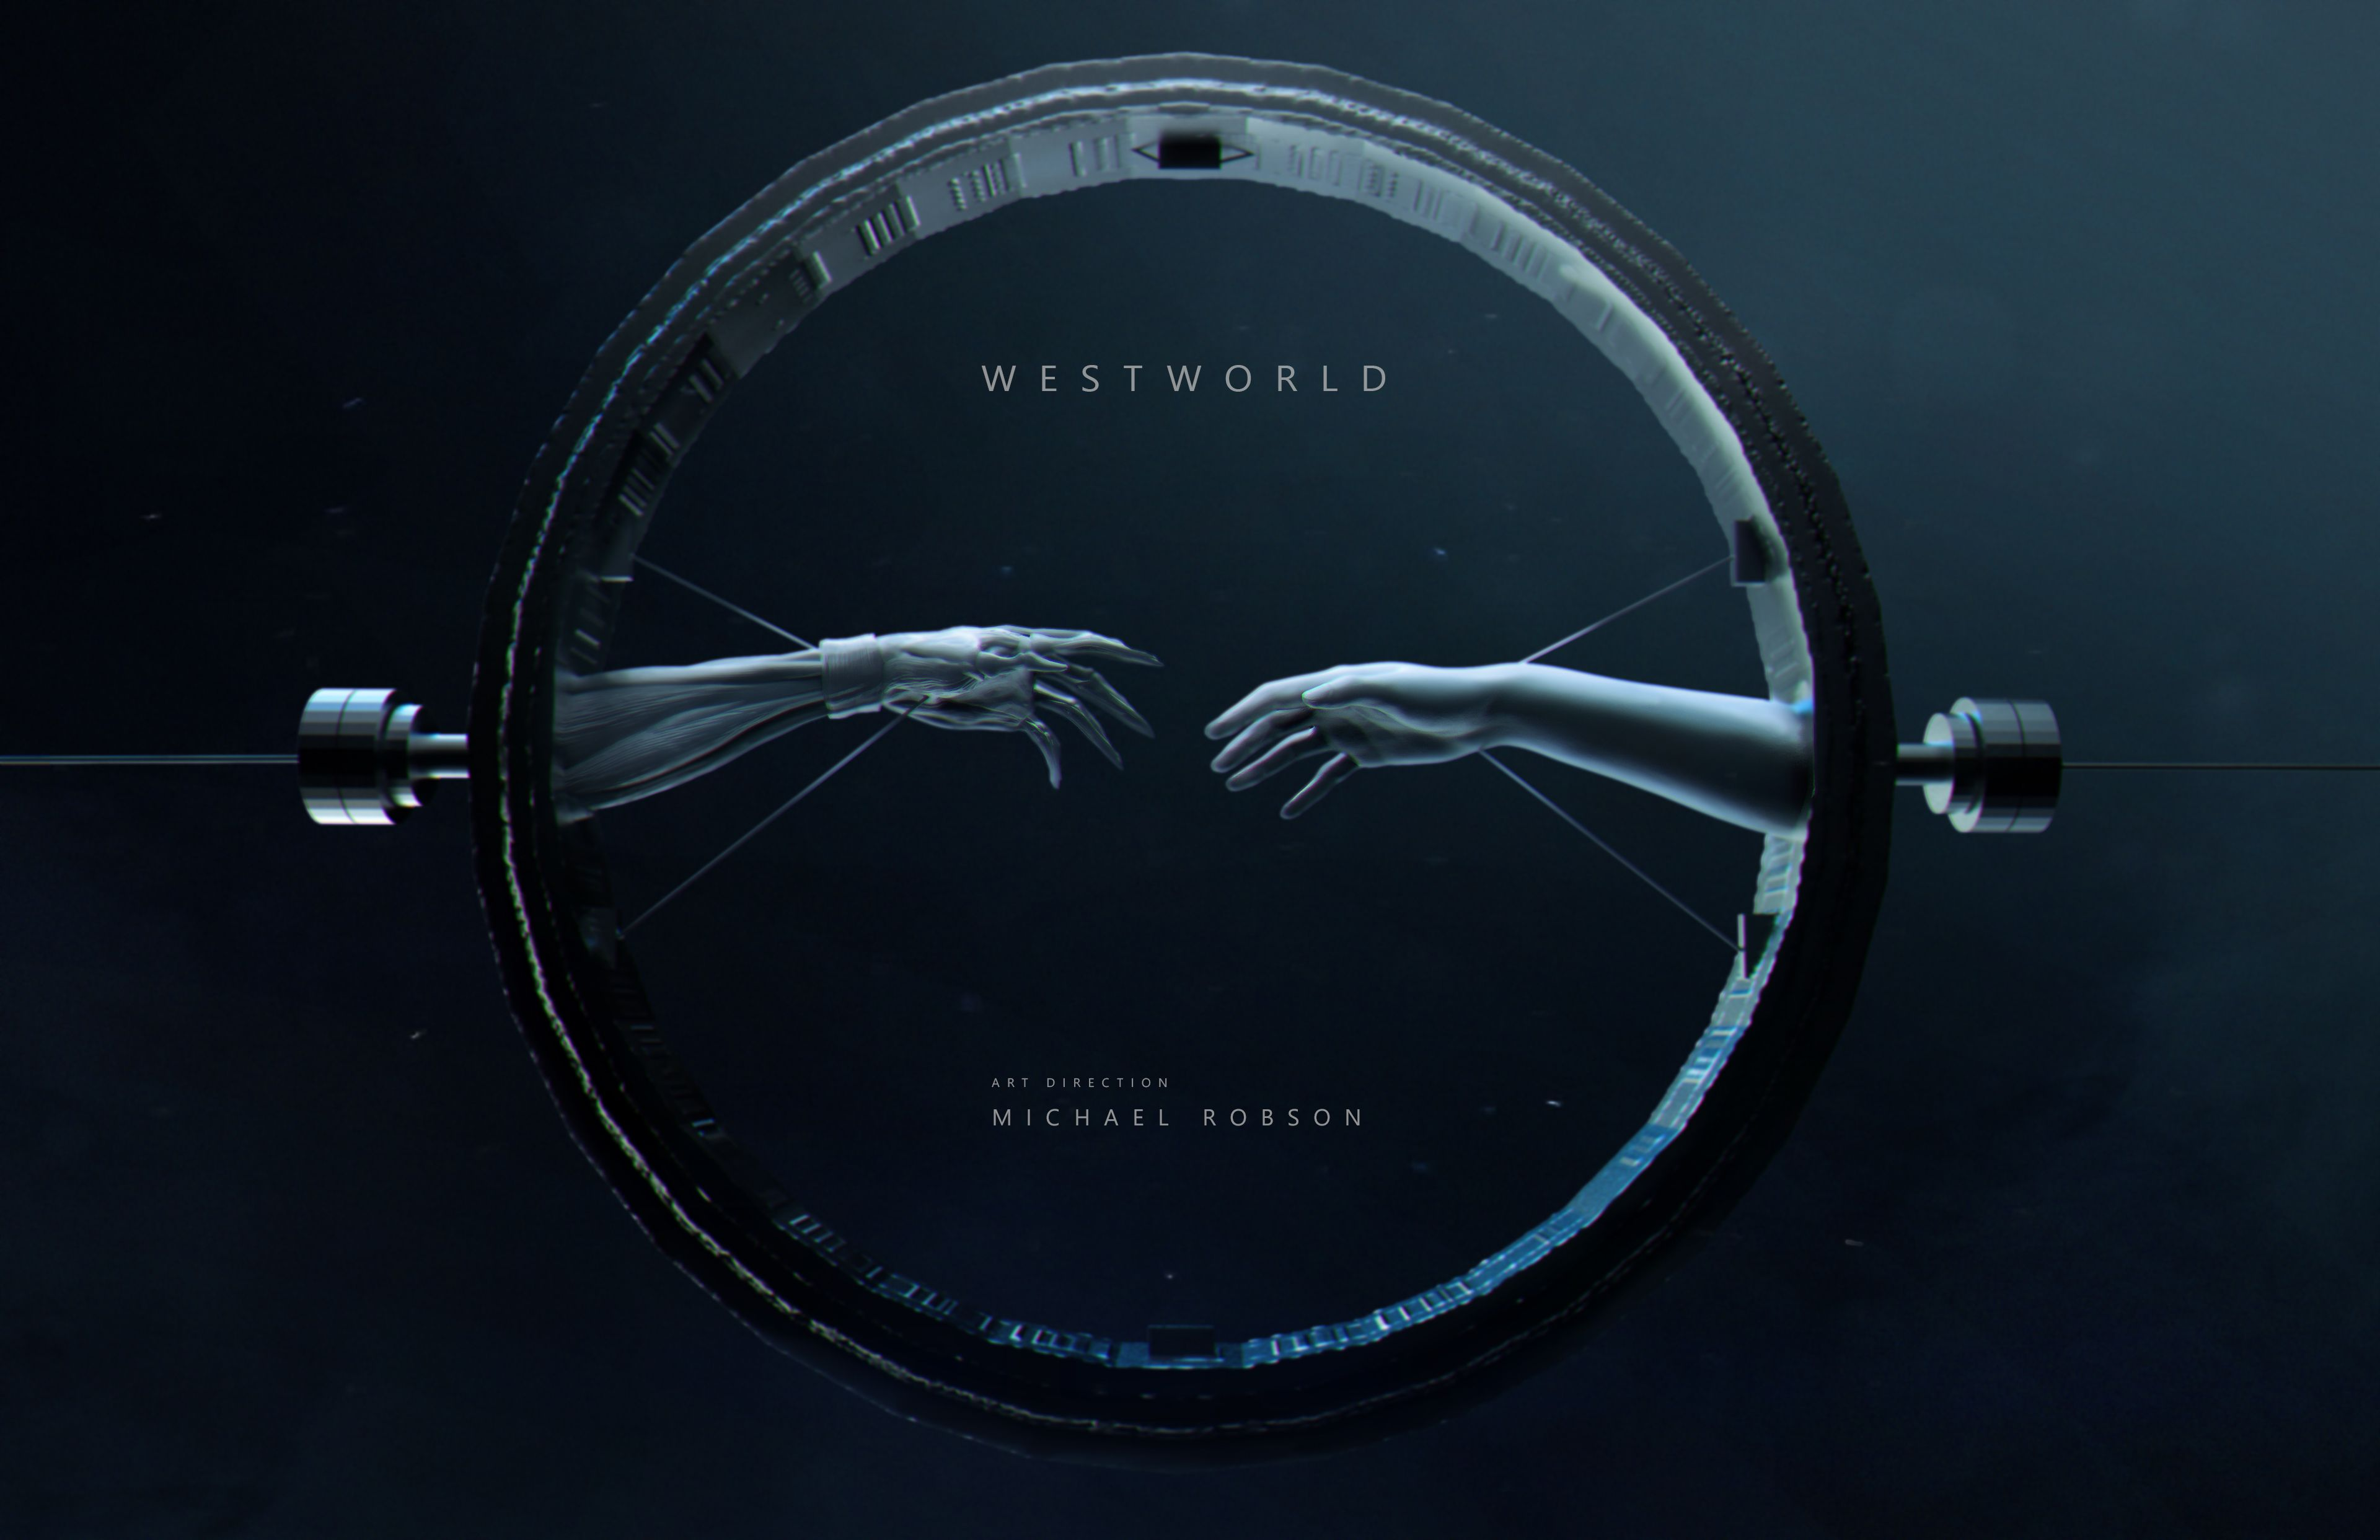 Westworld Fan Art Westworld Westworld Aesthetic Westworld Tv Series